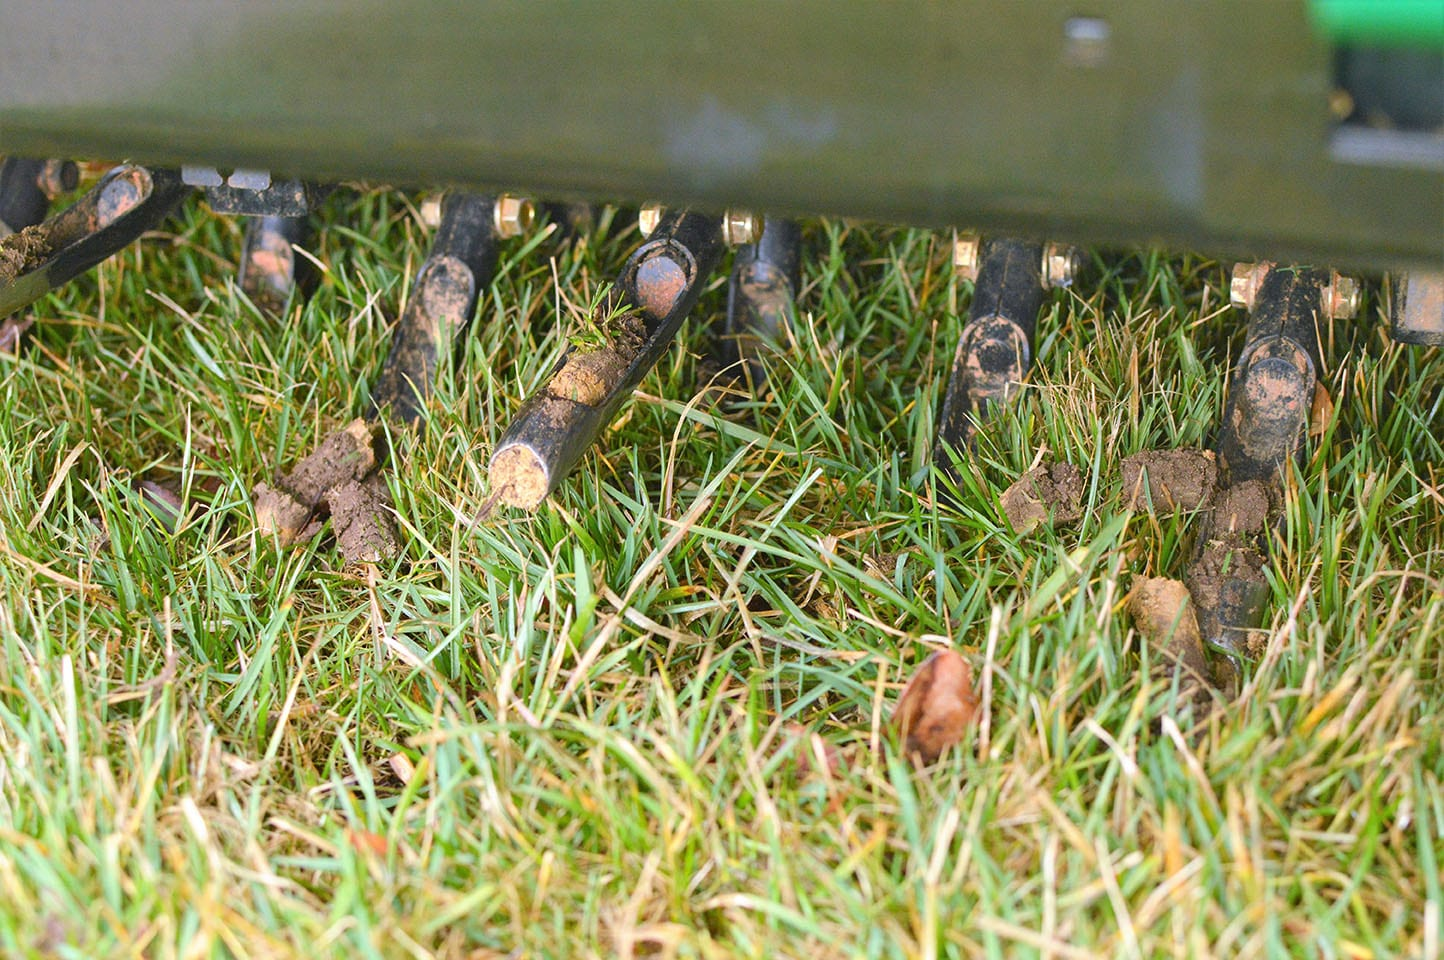 Aeration plugs after core aeration service